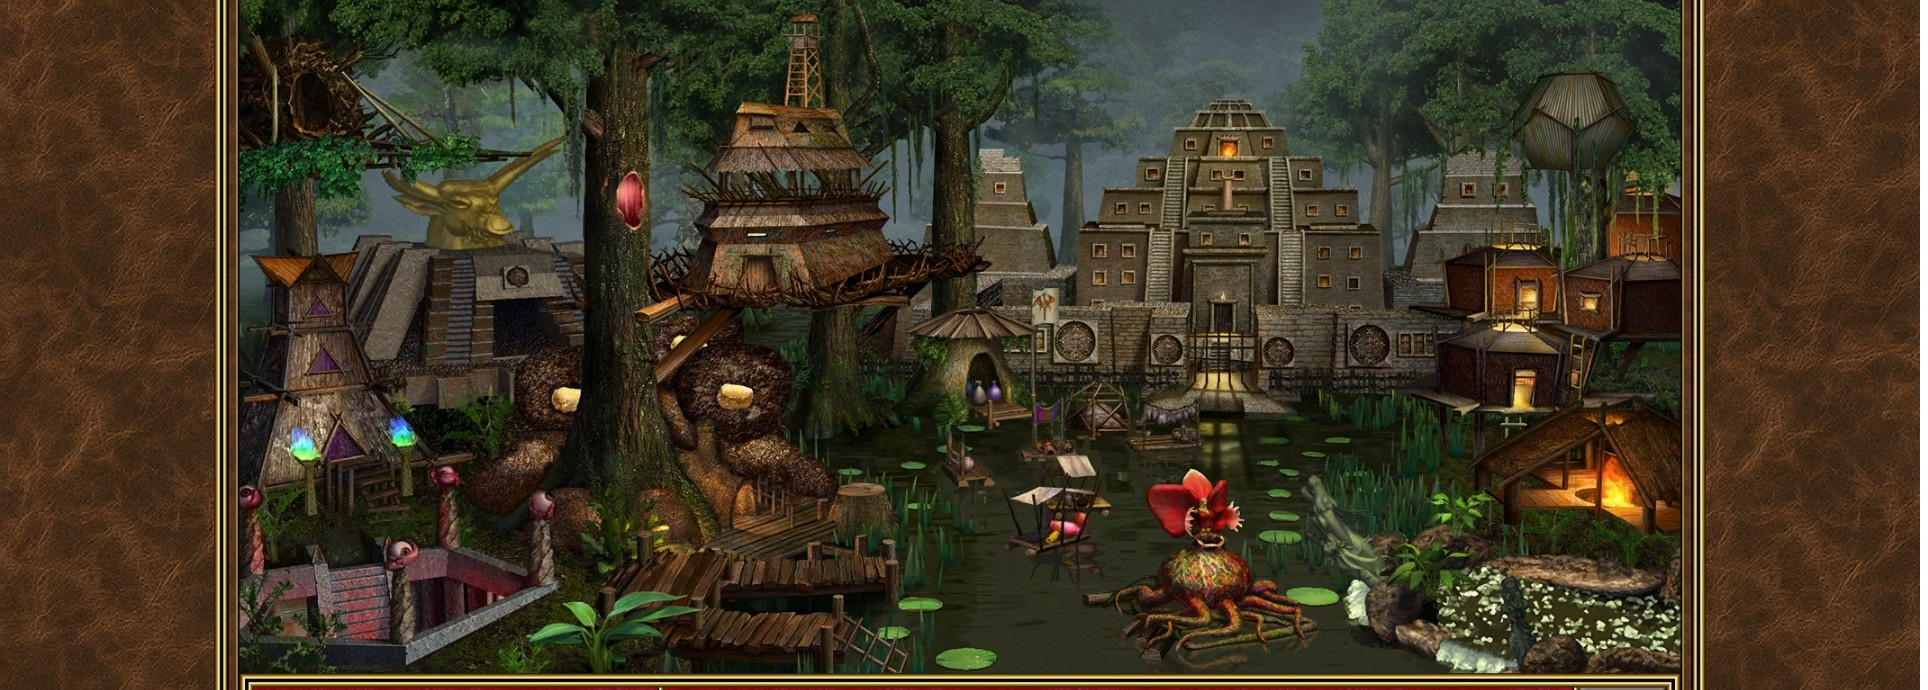 Grafika z gry Heroes of Might and Magic 3.